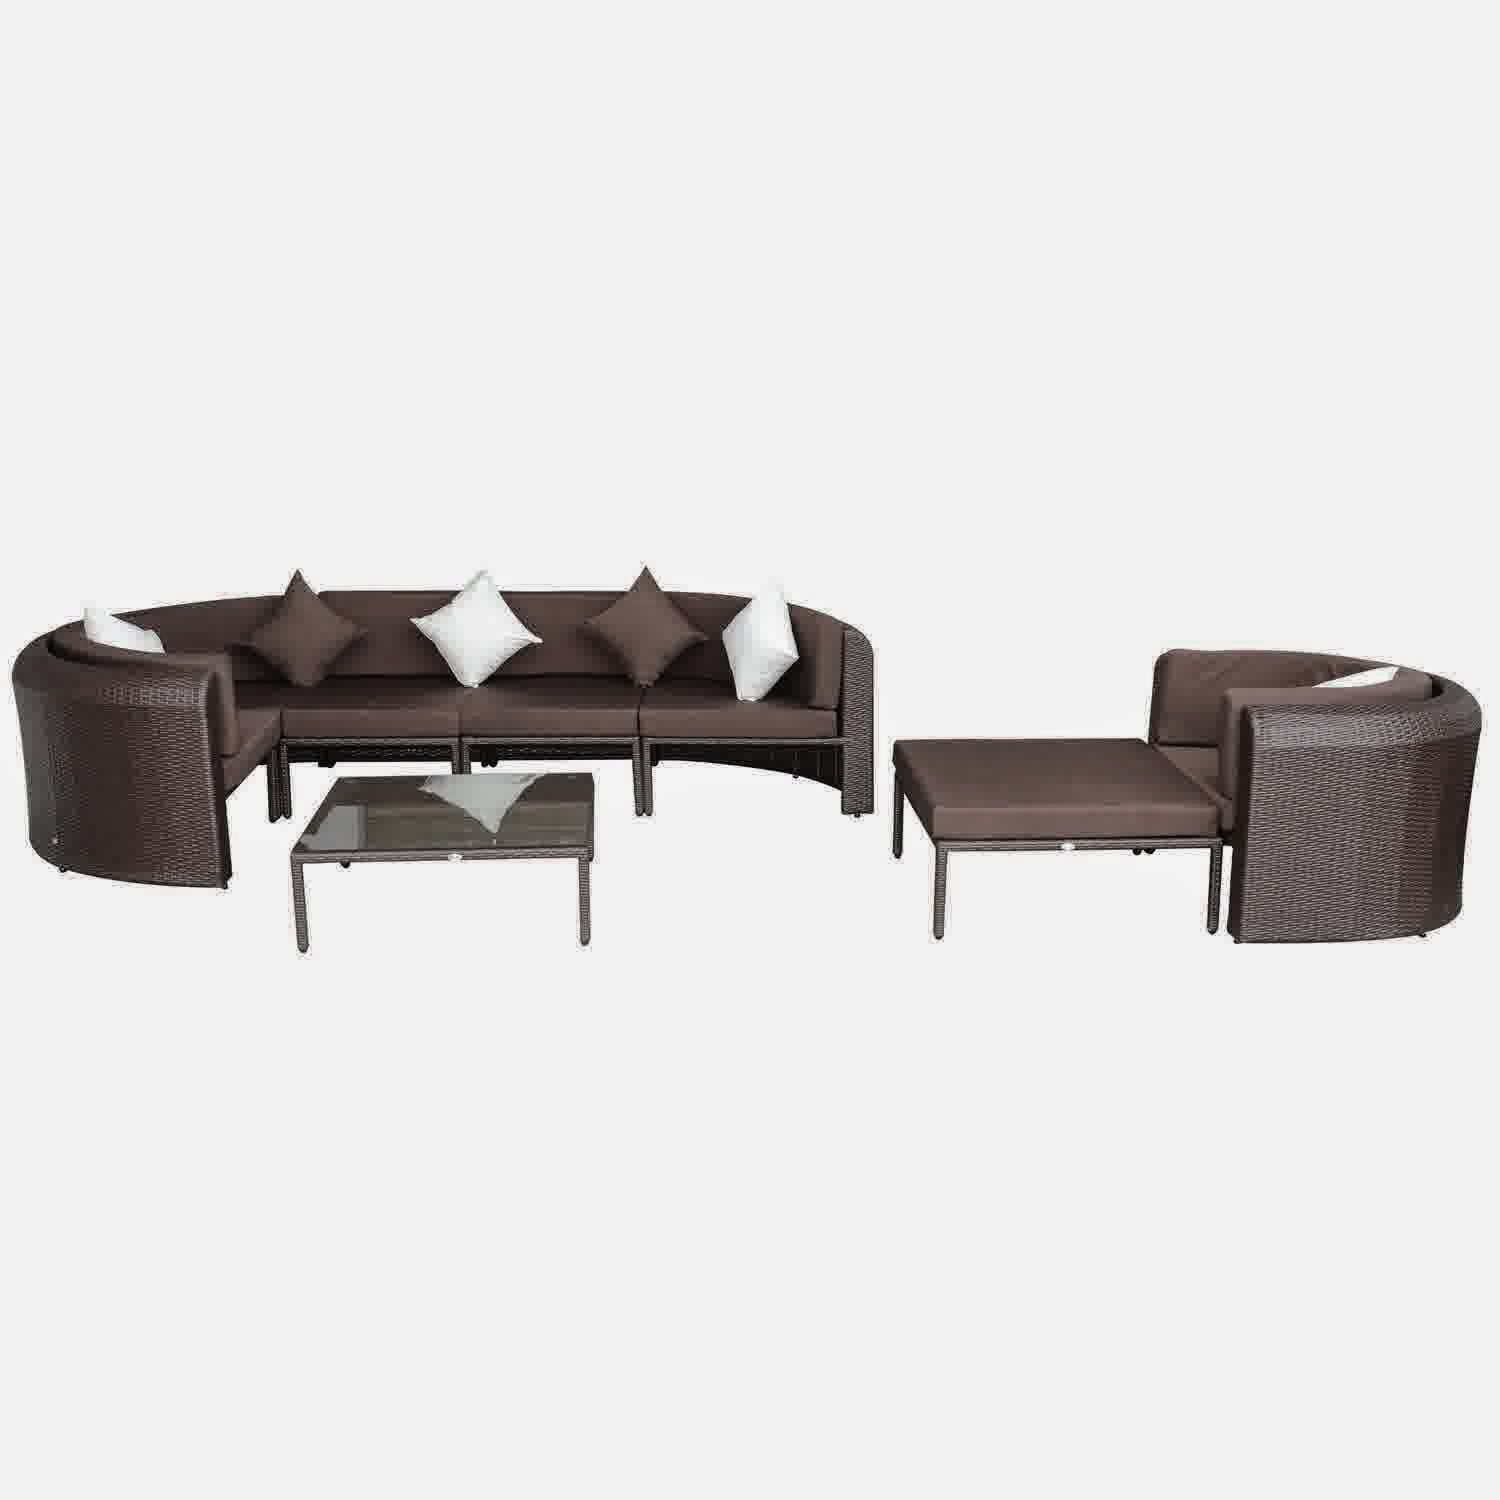 Outdoor PE Rattan Wicker Half Moon Sectional Sofa Furniture Set